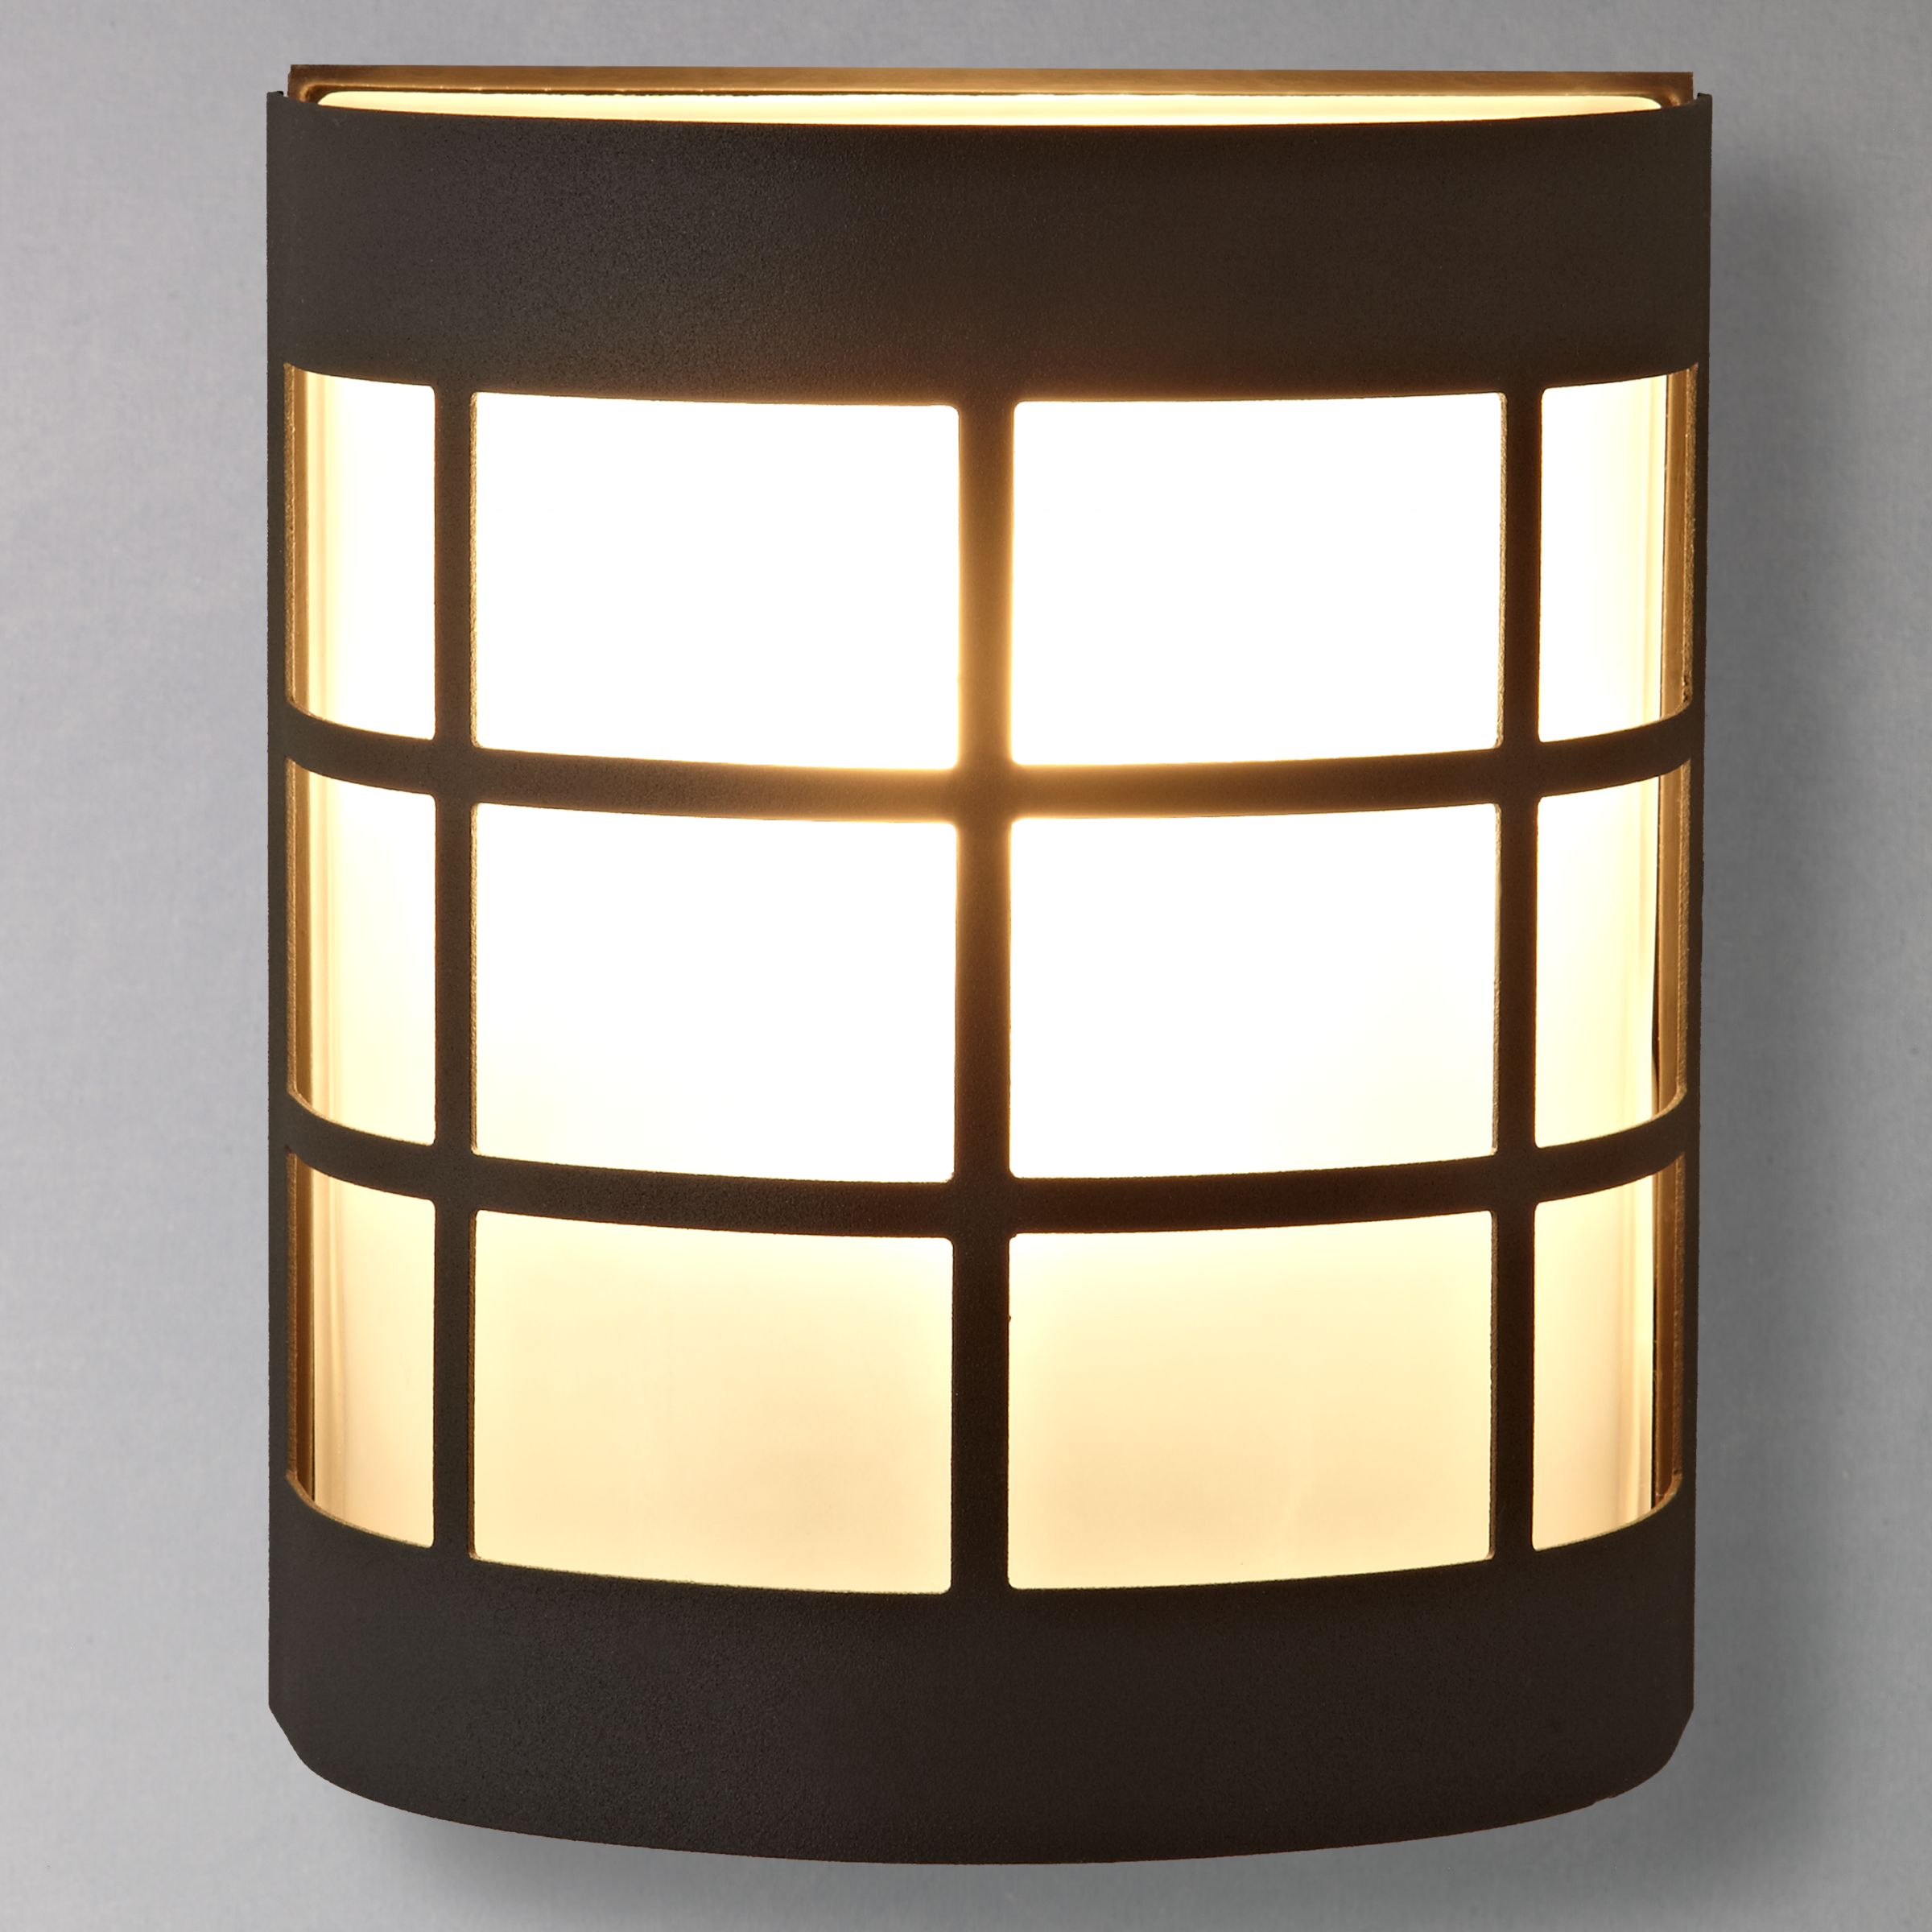 John Lewis Wall Lights Glass : Buy John Lewis Classic Canterbury Wall Light John Lewis